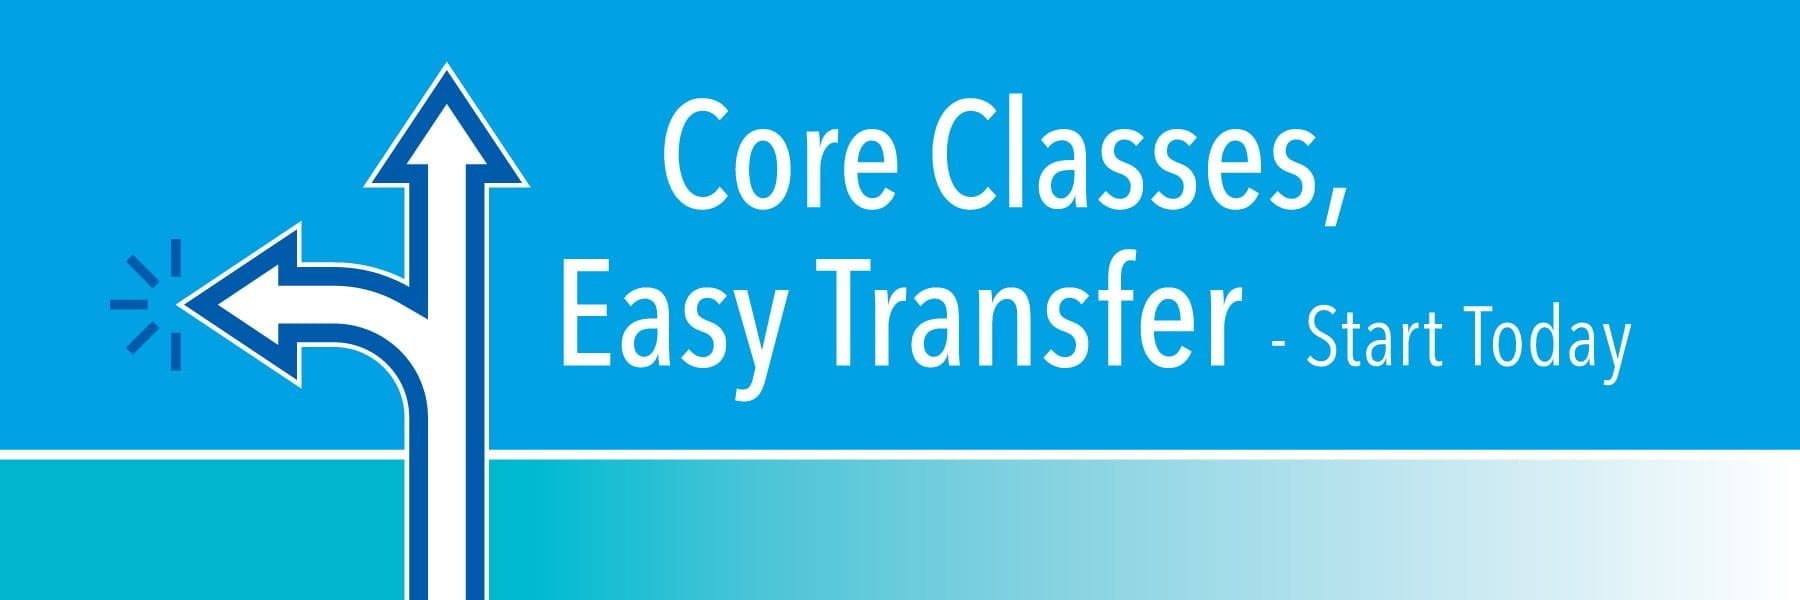 Core Classes. Easy Transfer. Start today.